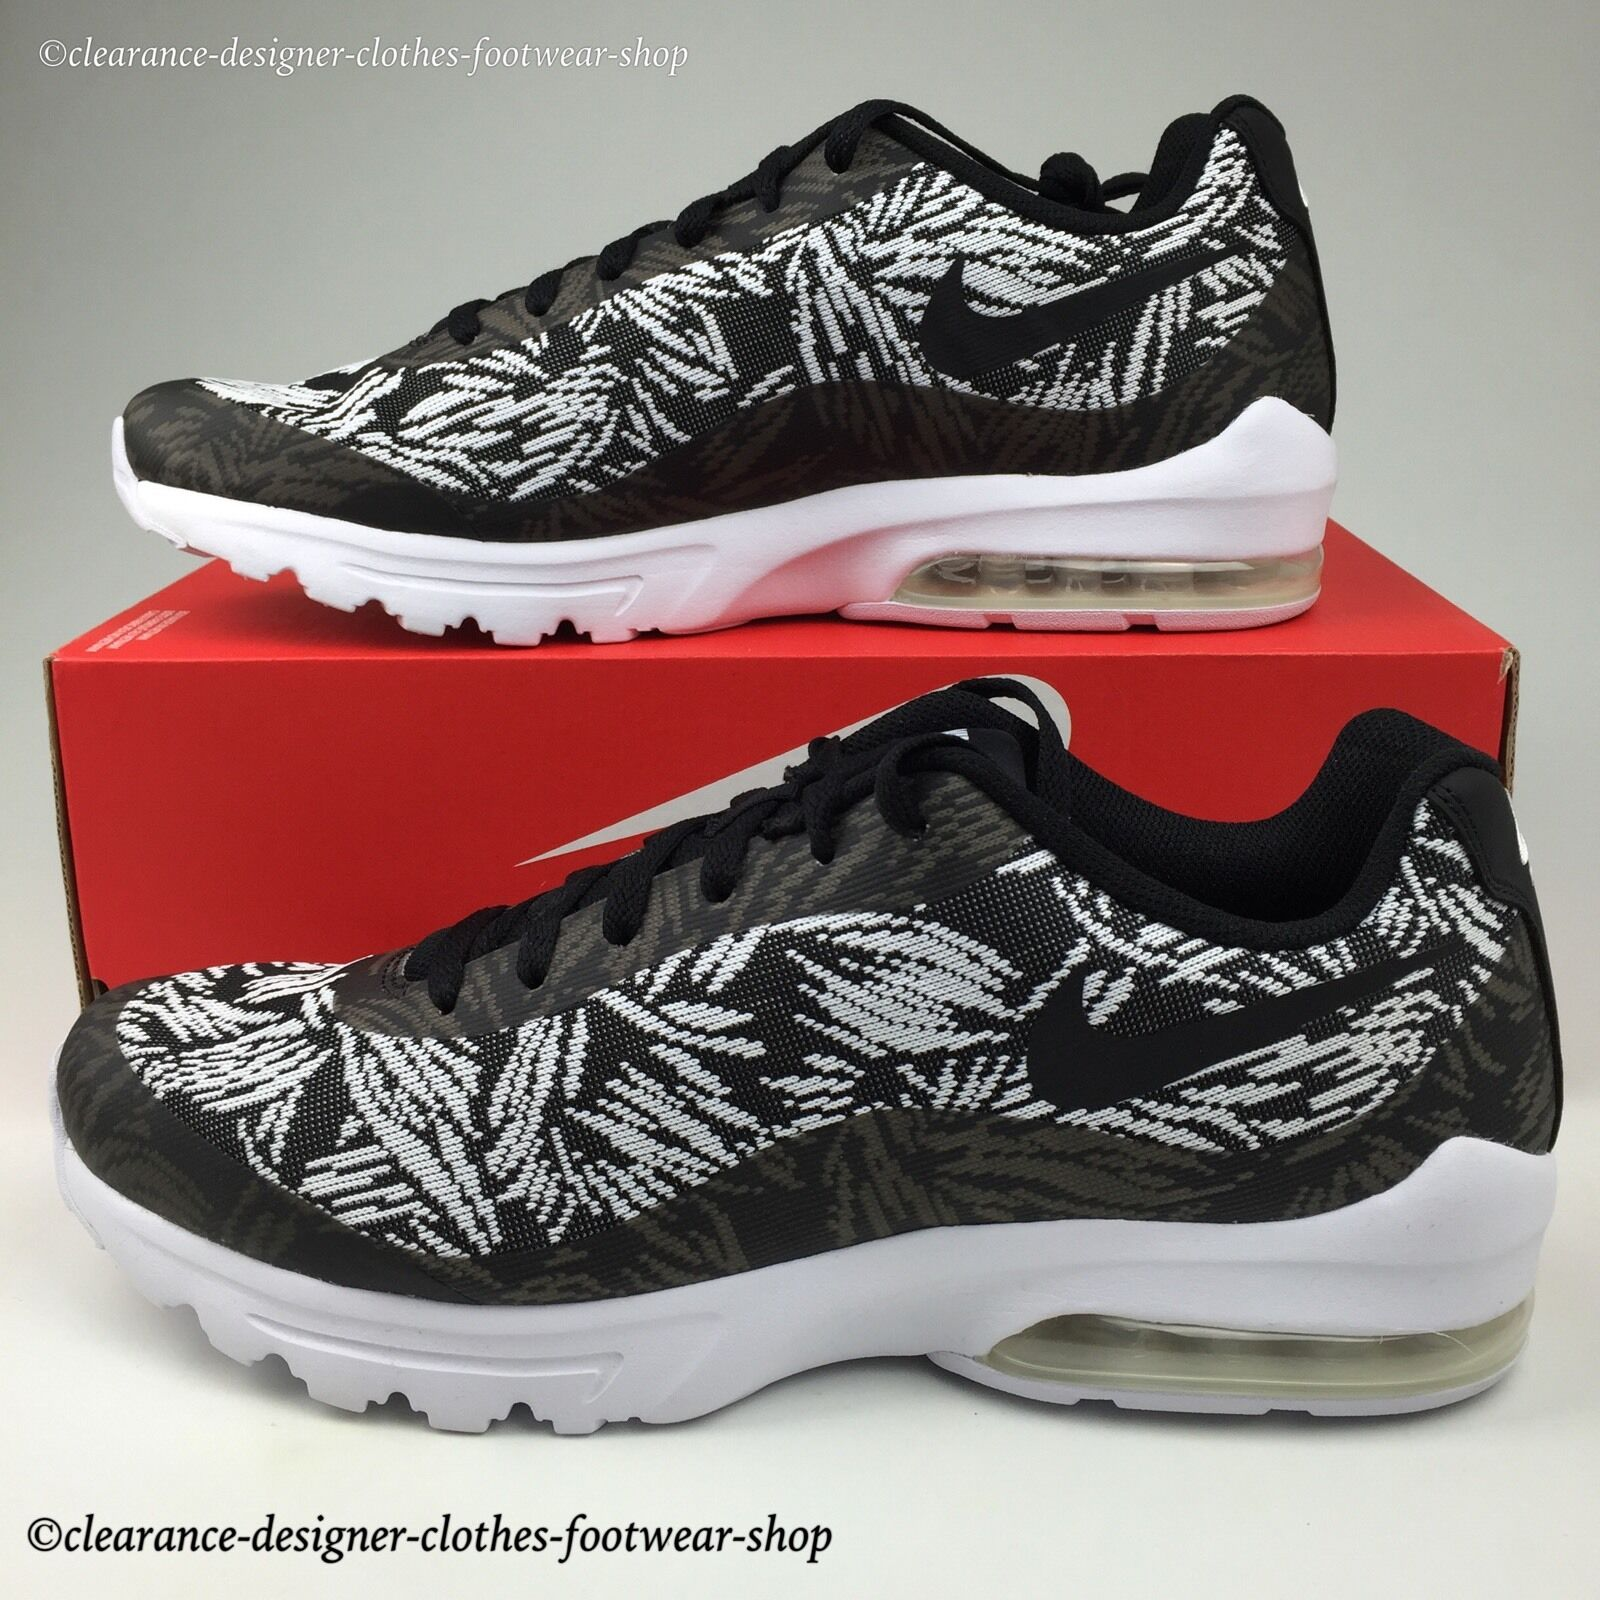 NIKE AIR MAX INVIGOR KJQRD TRAINERS MENS KNIT JACQUARD CASUAL schuhe